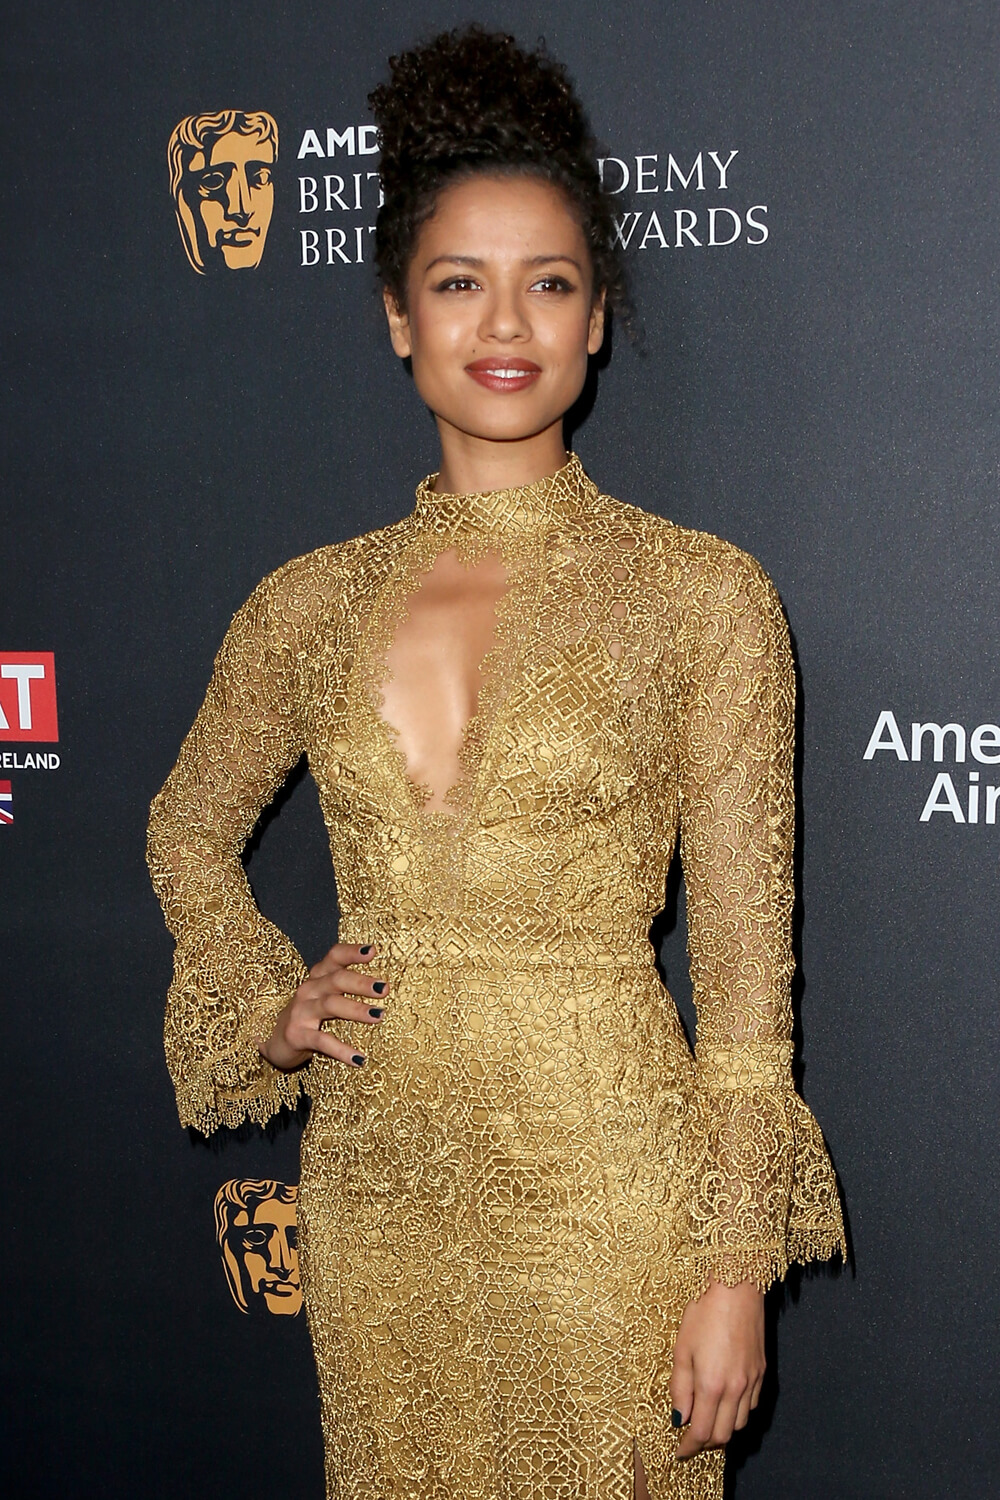 Gugu Mbatha-Raw at the AMD Britannia Awards (2016)